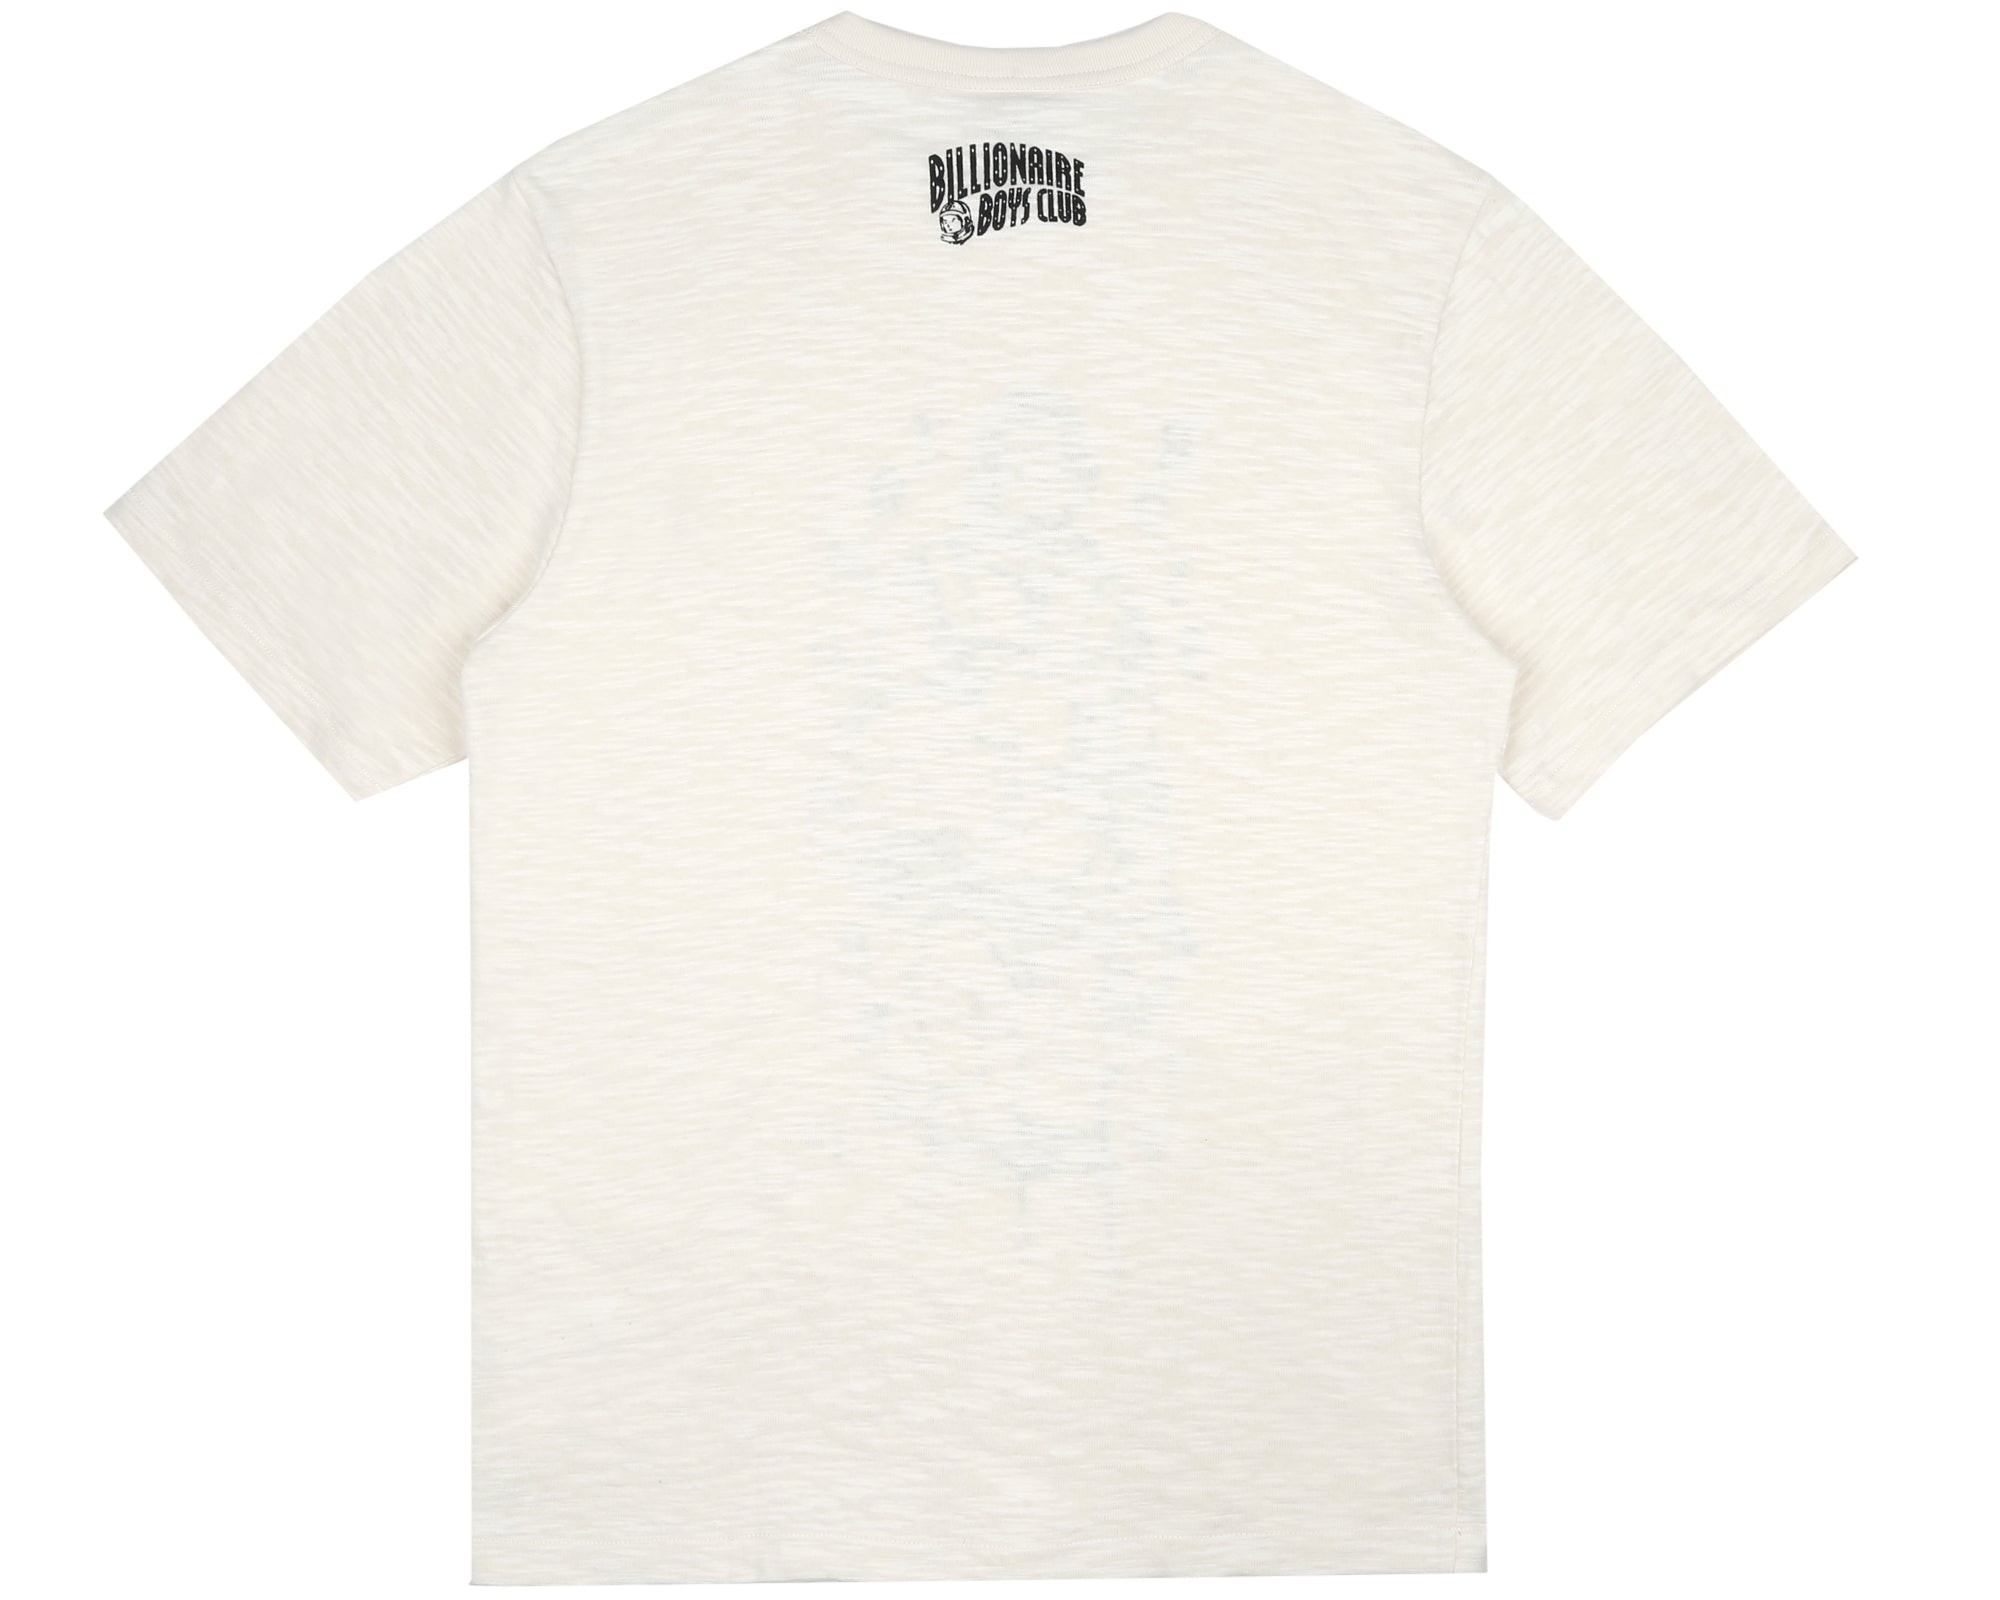 BOYS OF TOMORROW LOGO T-SHIRT - WHITE